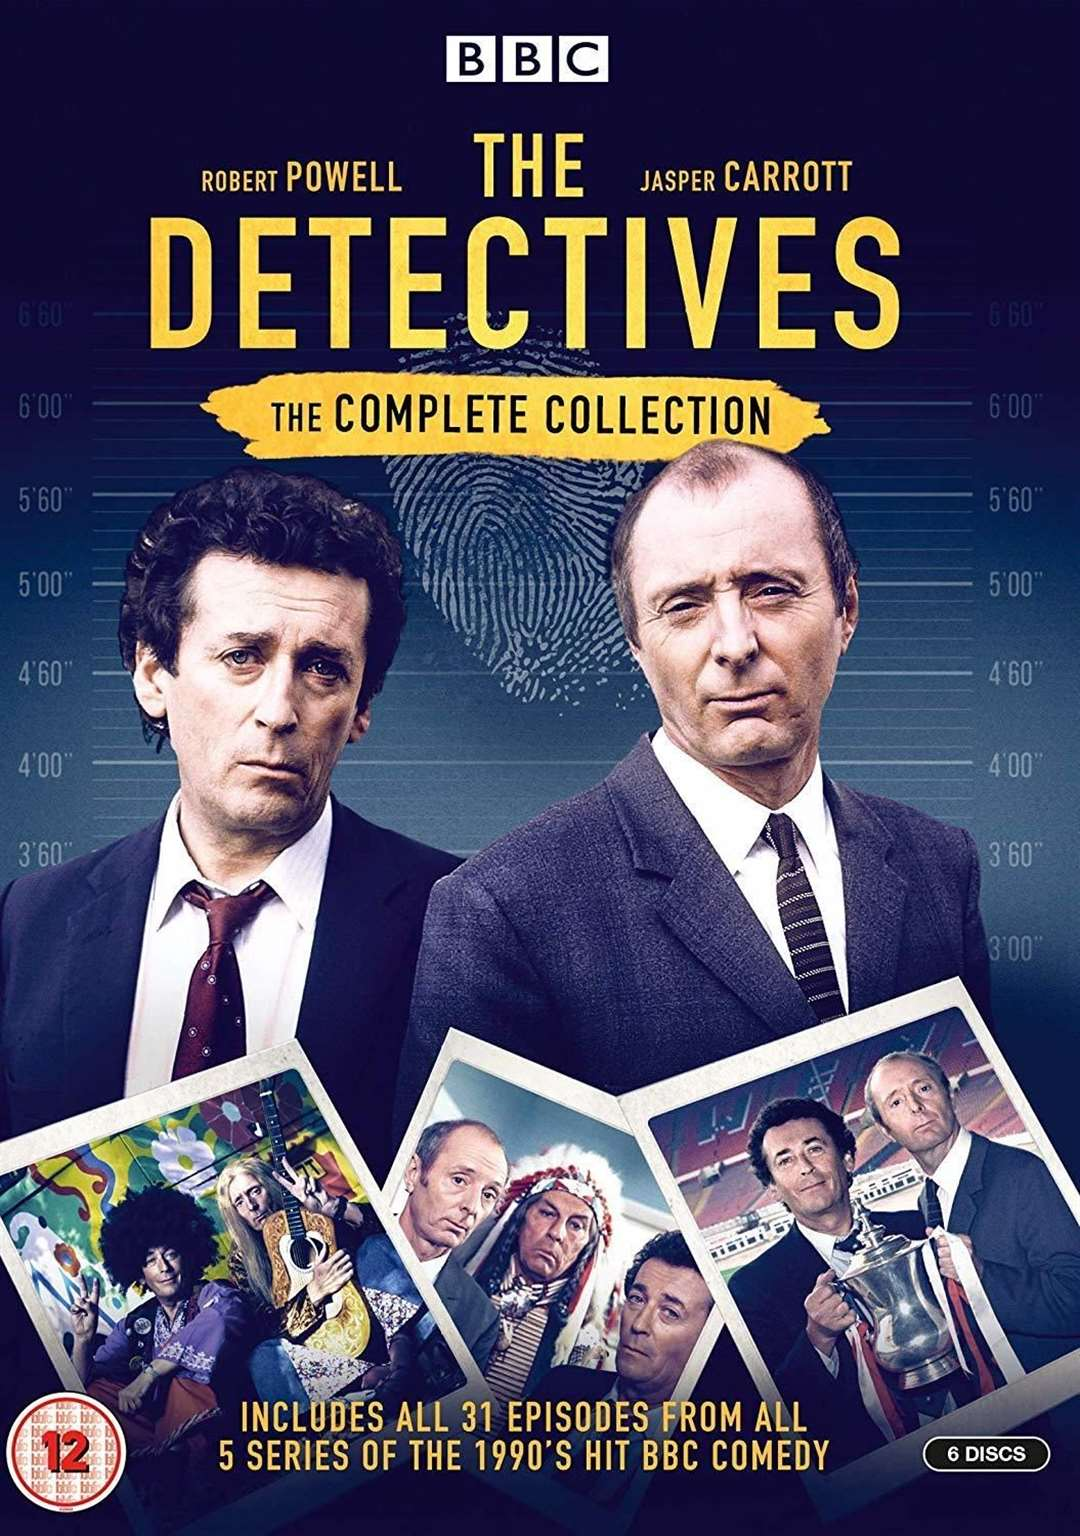 The Detectives DVD cover